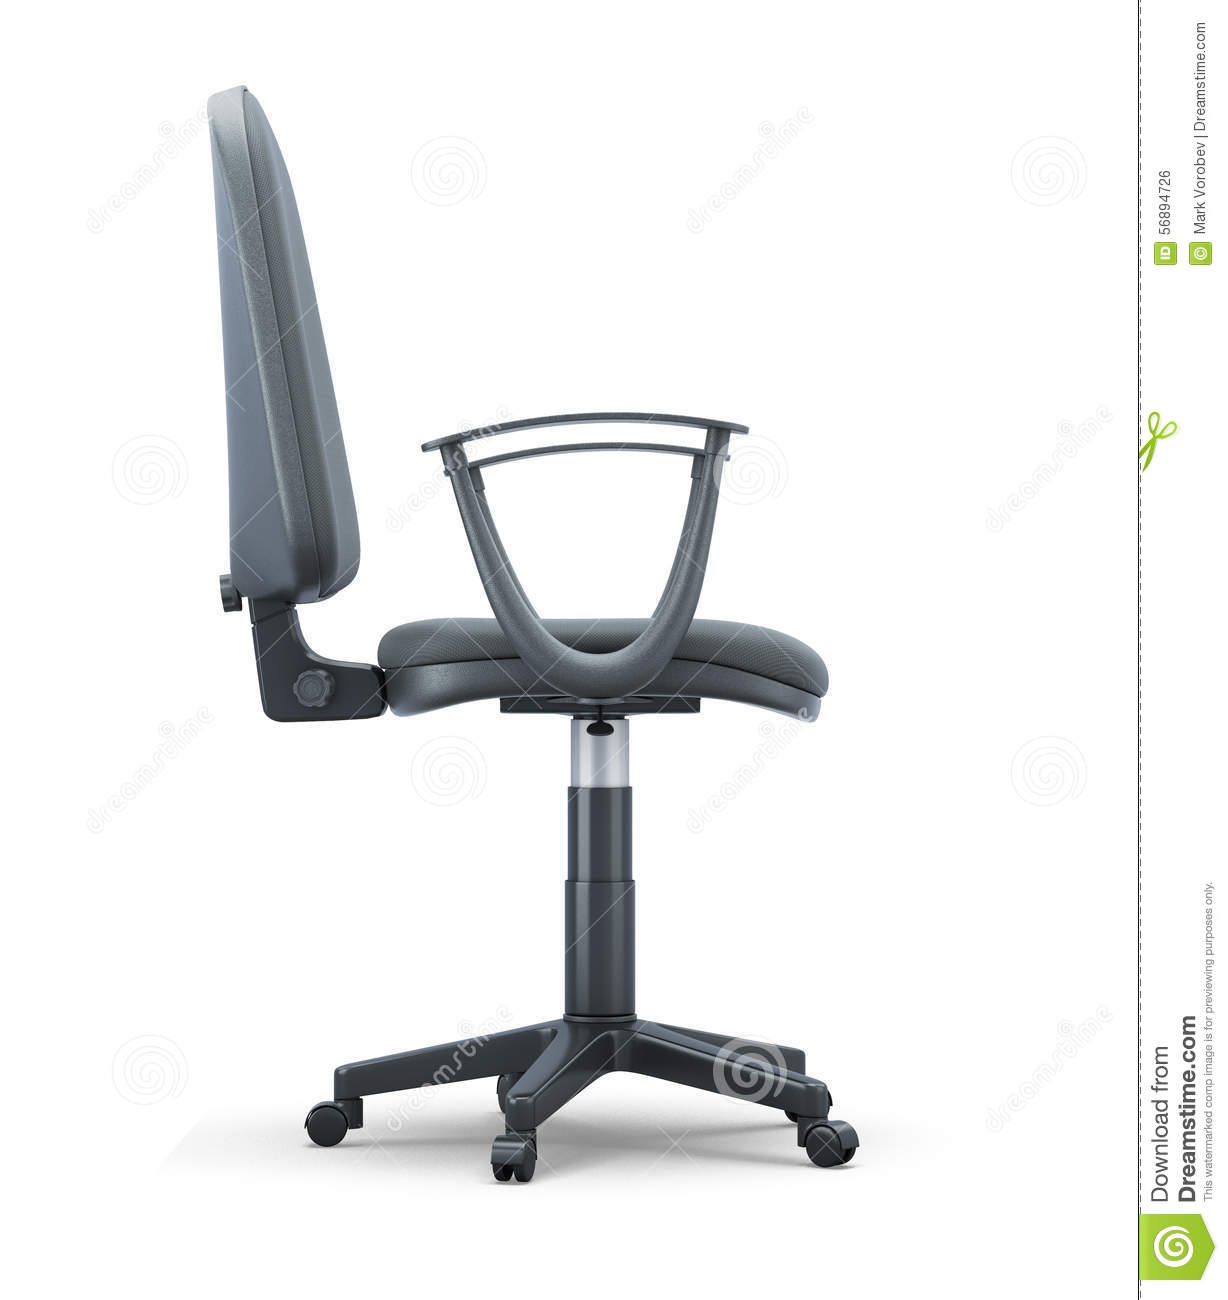 Office Chair Side View On A White Stock Illustration - Illustration ... for office chair vector side view  55dqh